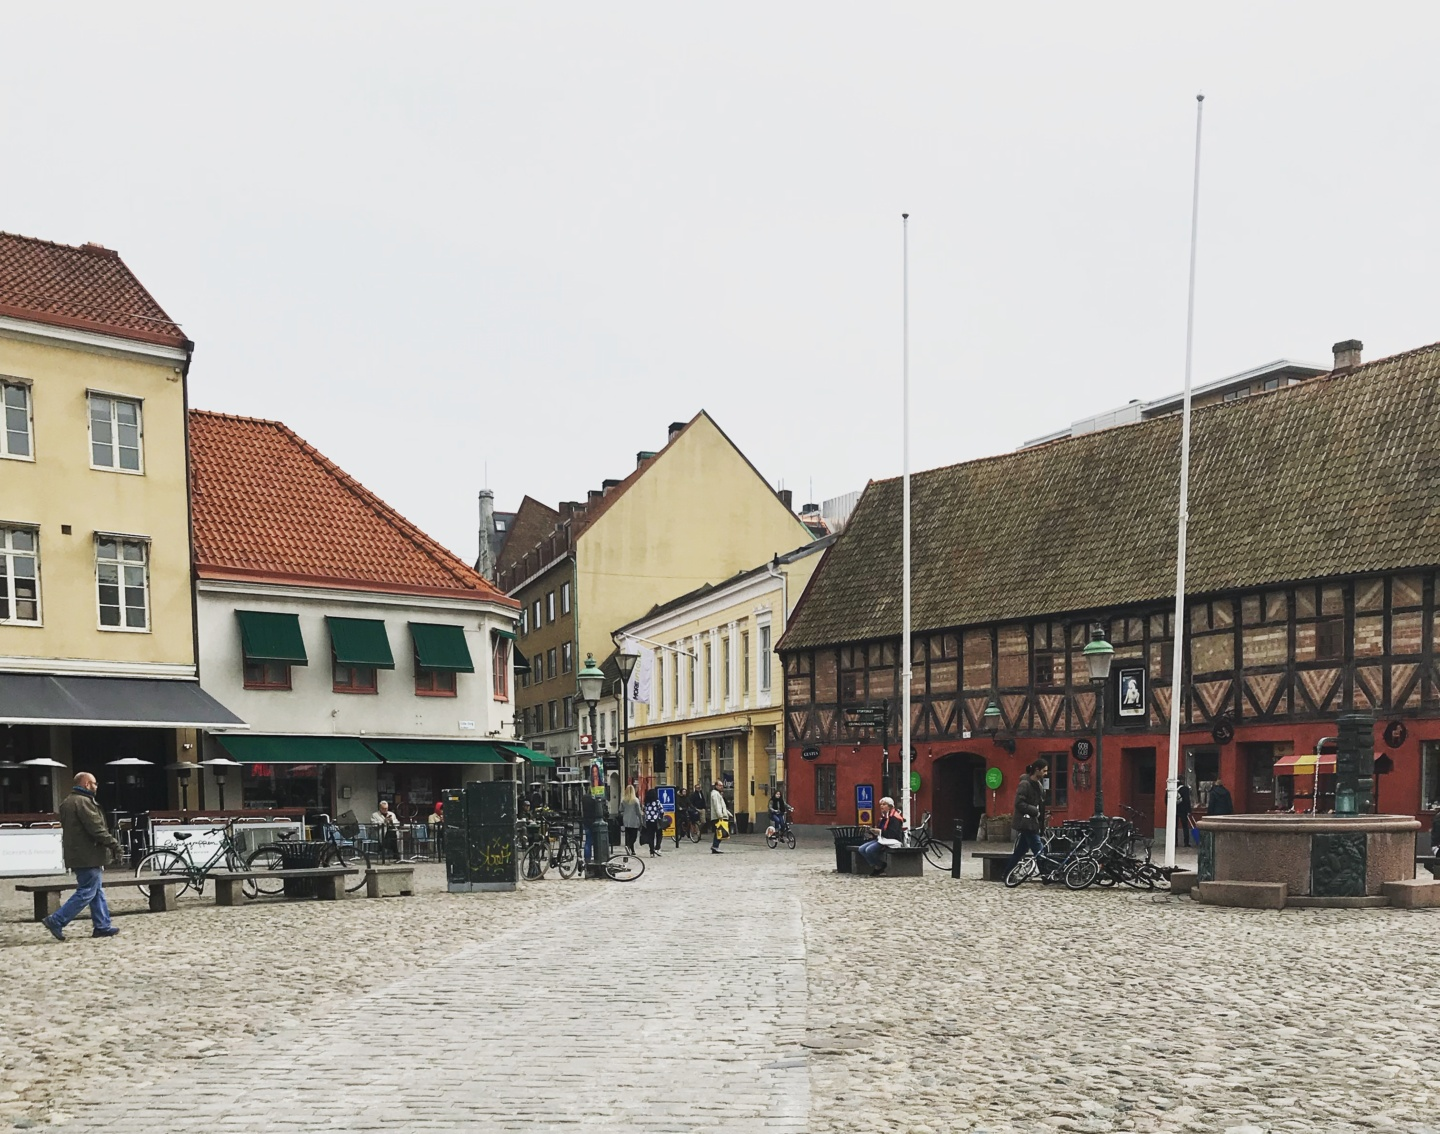 Wanderlust bee - Daytripping to Lund, Sweden